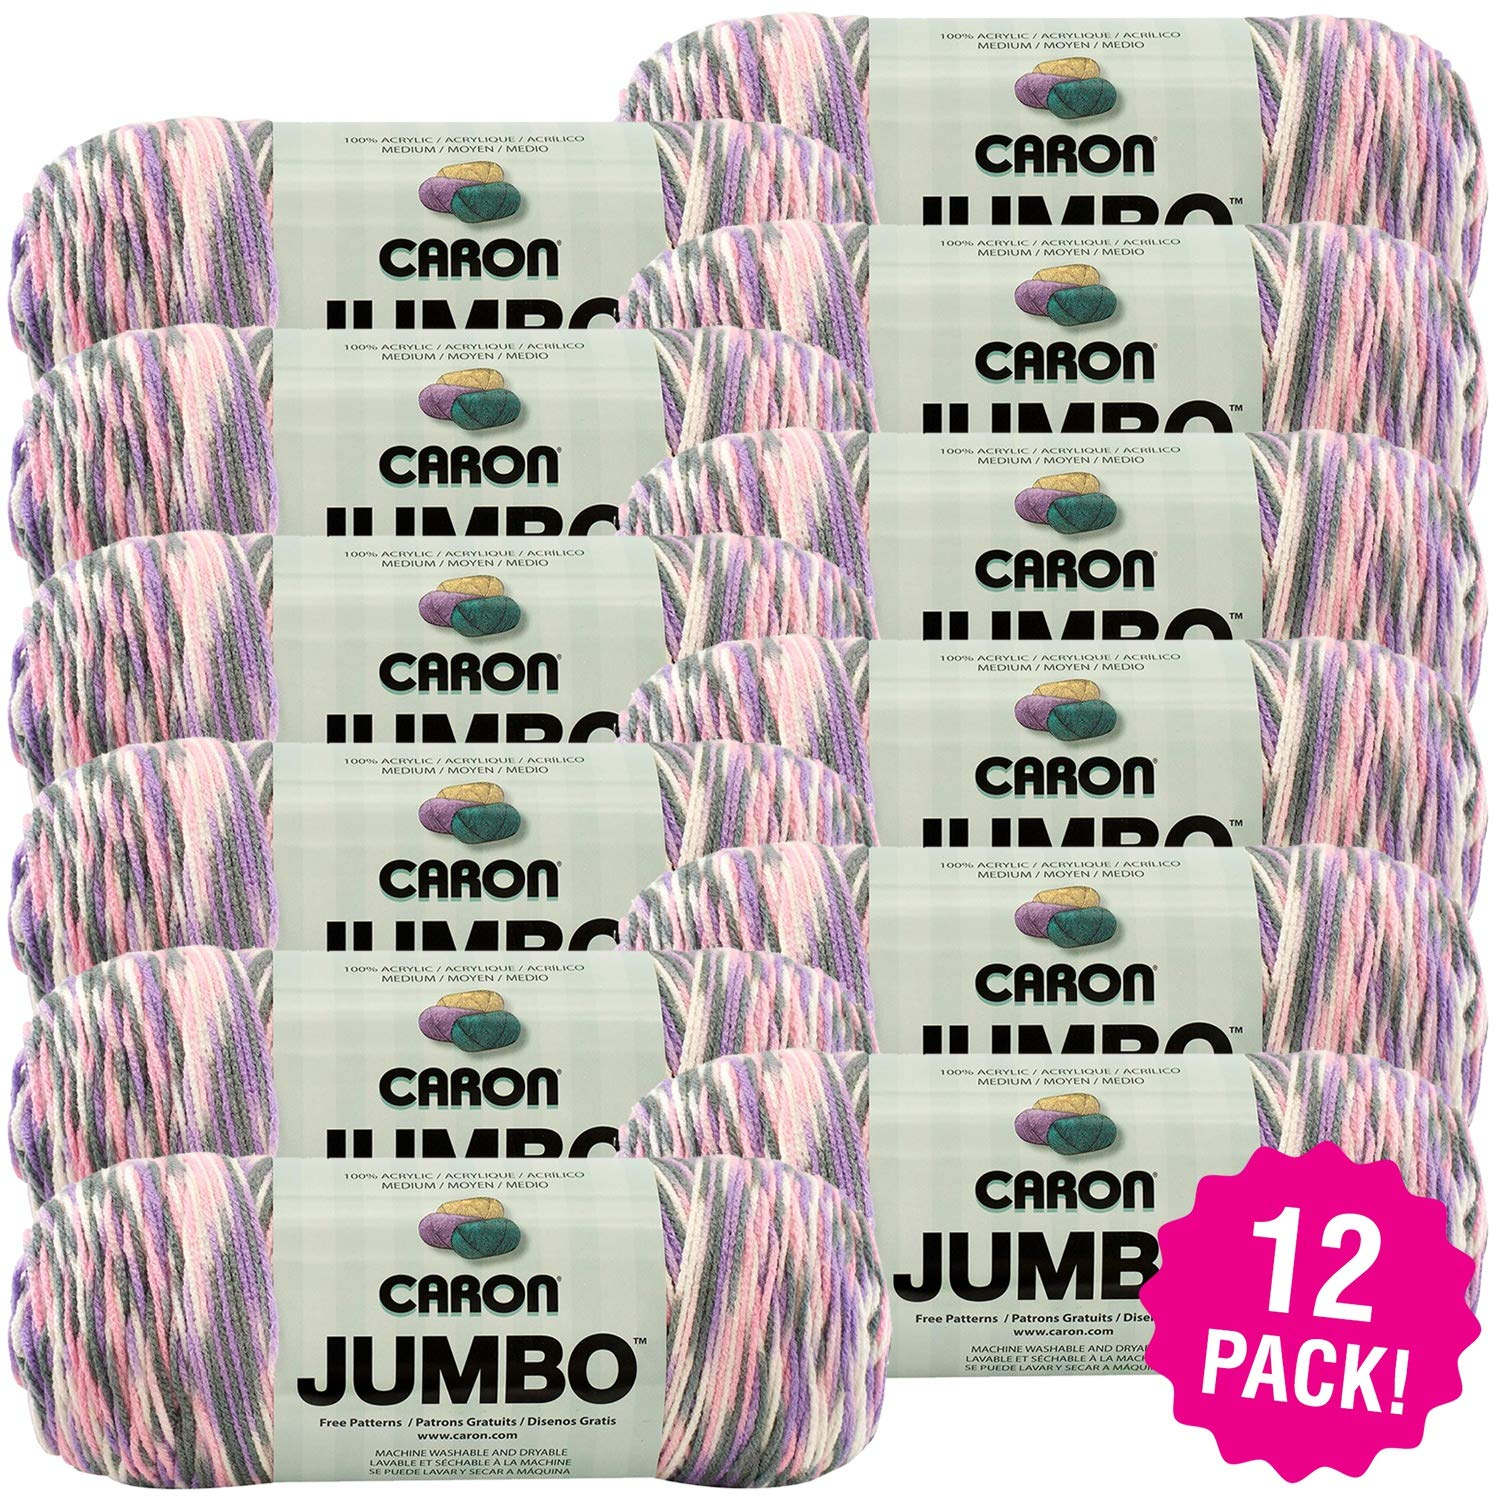 Caron 99574 Jumbo Print Yarn-Easter Basket, Multipack of 12, Pack